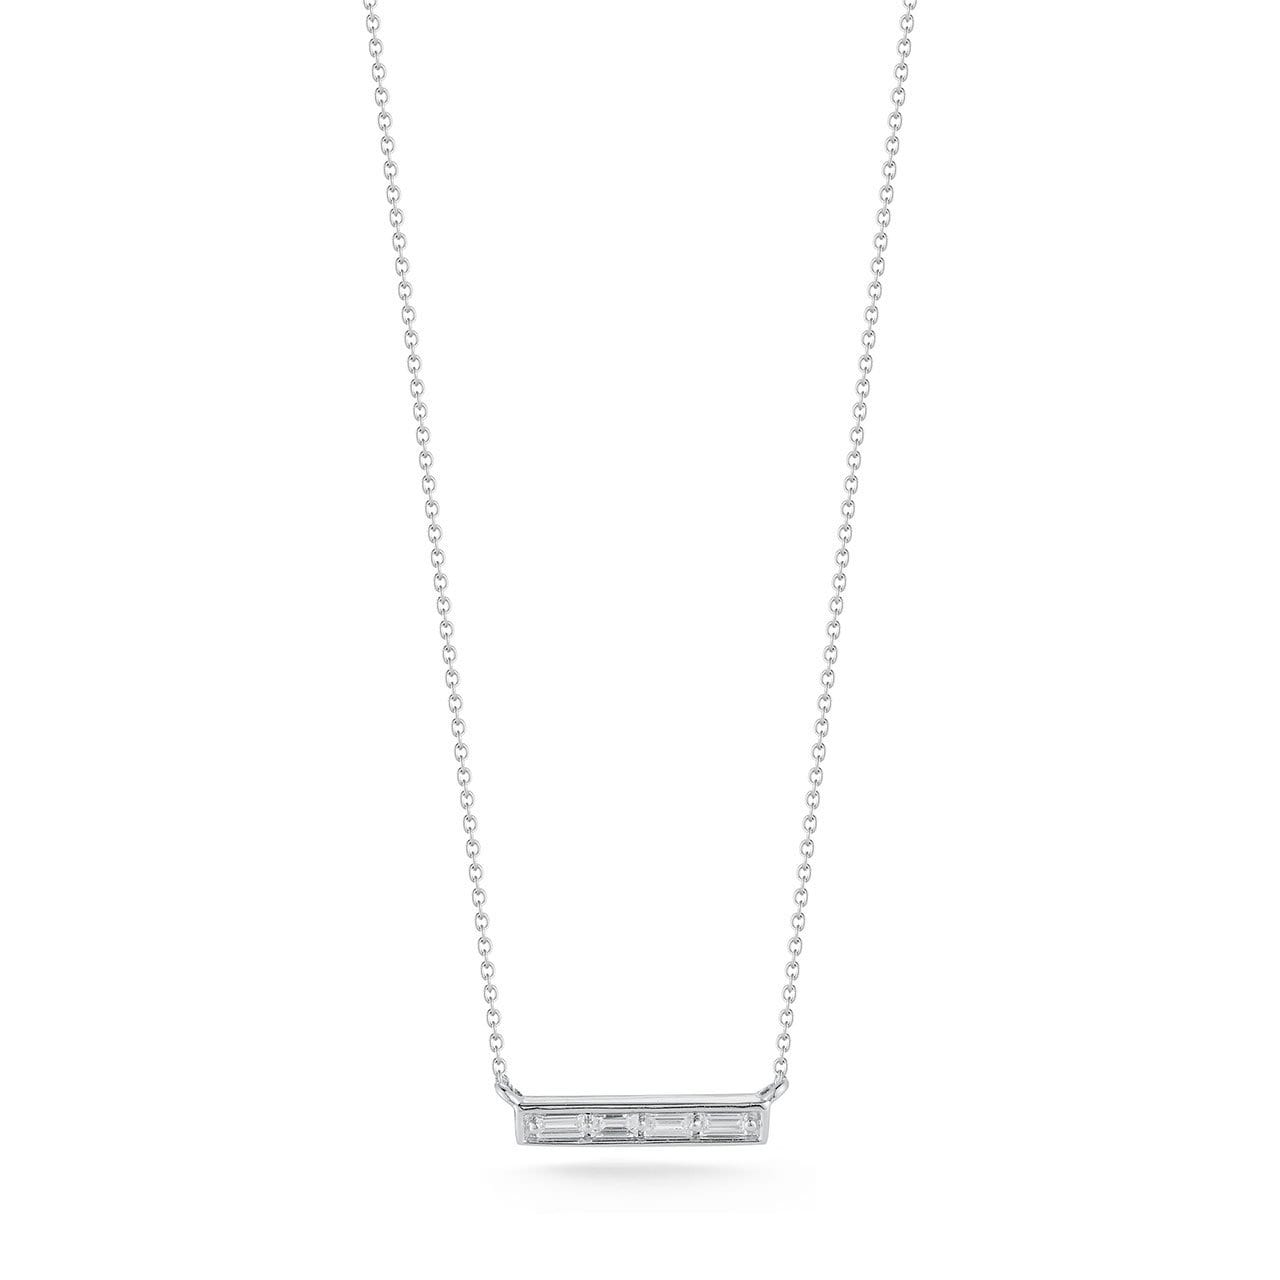 Vincents Fine Jewelry | Dana Rebecca | Sadie Pearl Baguette Bar Necklace